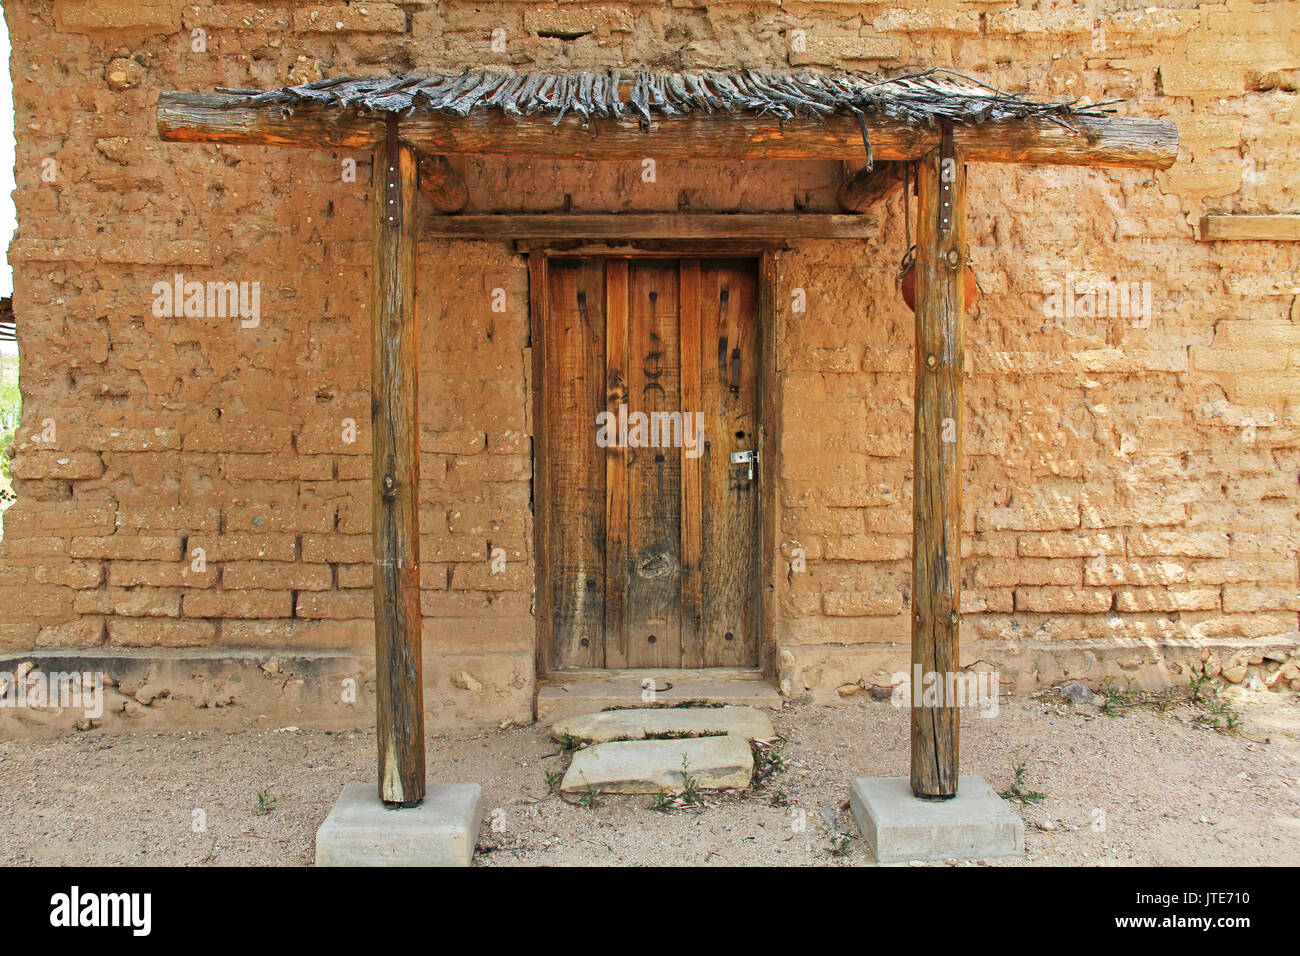 Vail, Arizona, USA, April 10, 2017:  Door of the historic building housing the CCC Museum with copy space on La Posta Quemada Ranch in Colossal Cave M - Stock Image